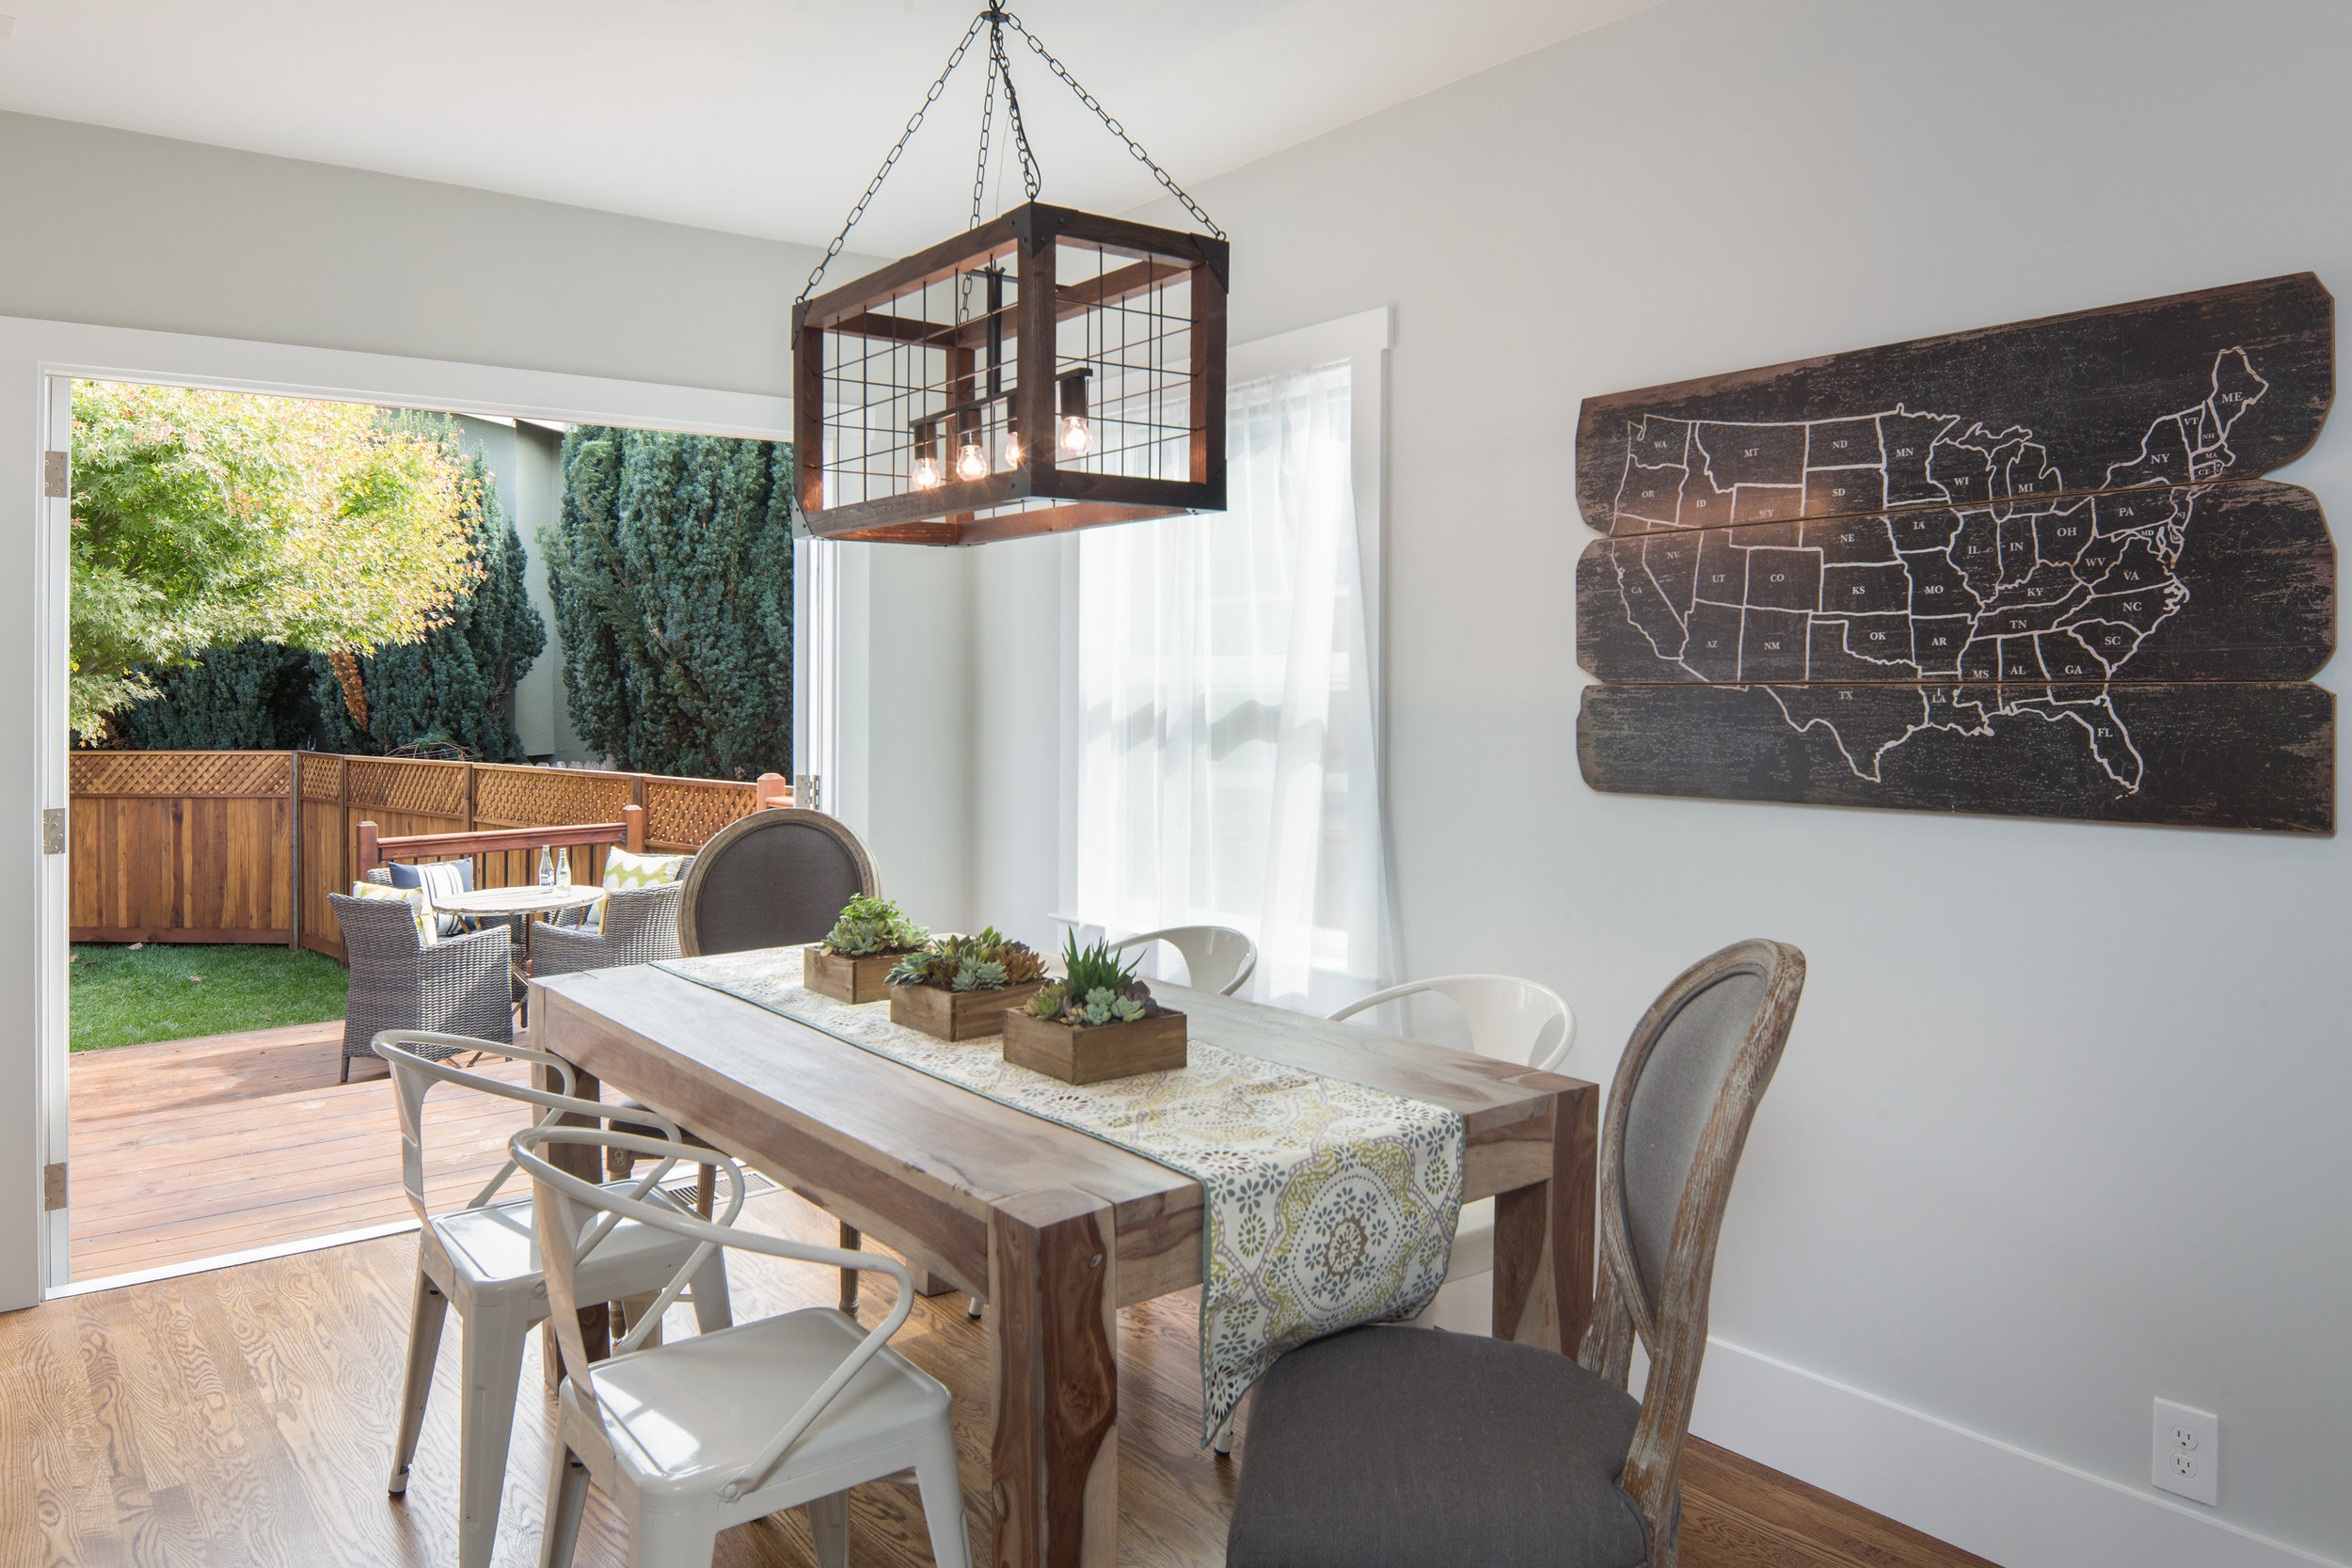 Rockridge, Oakland CA 94618 Dining Room Interior Design and Real Estate Staging